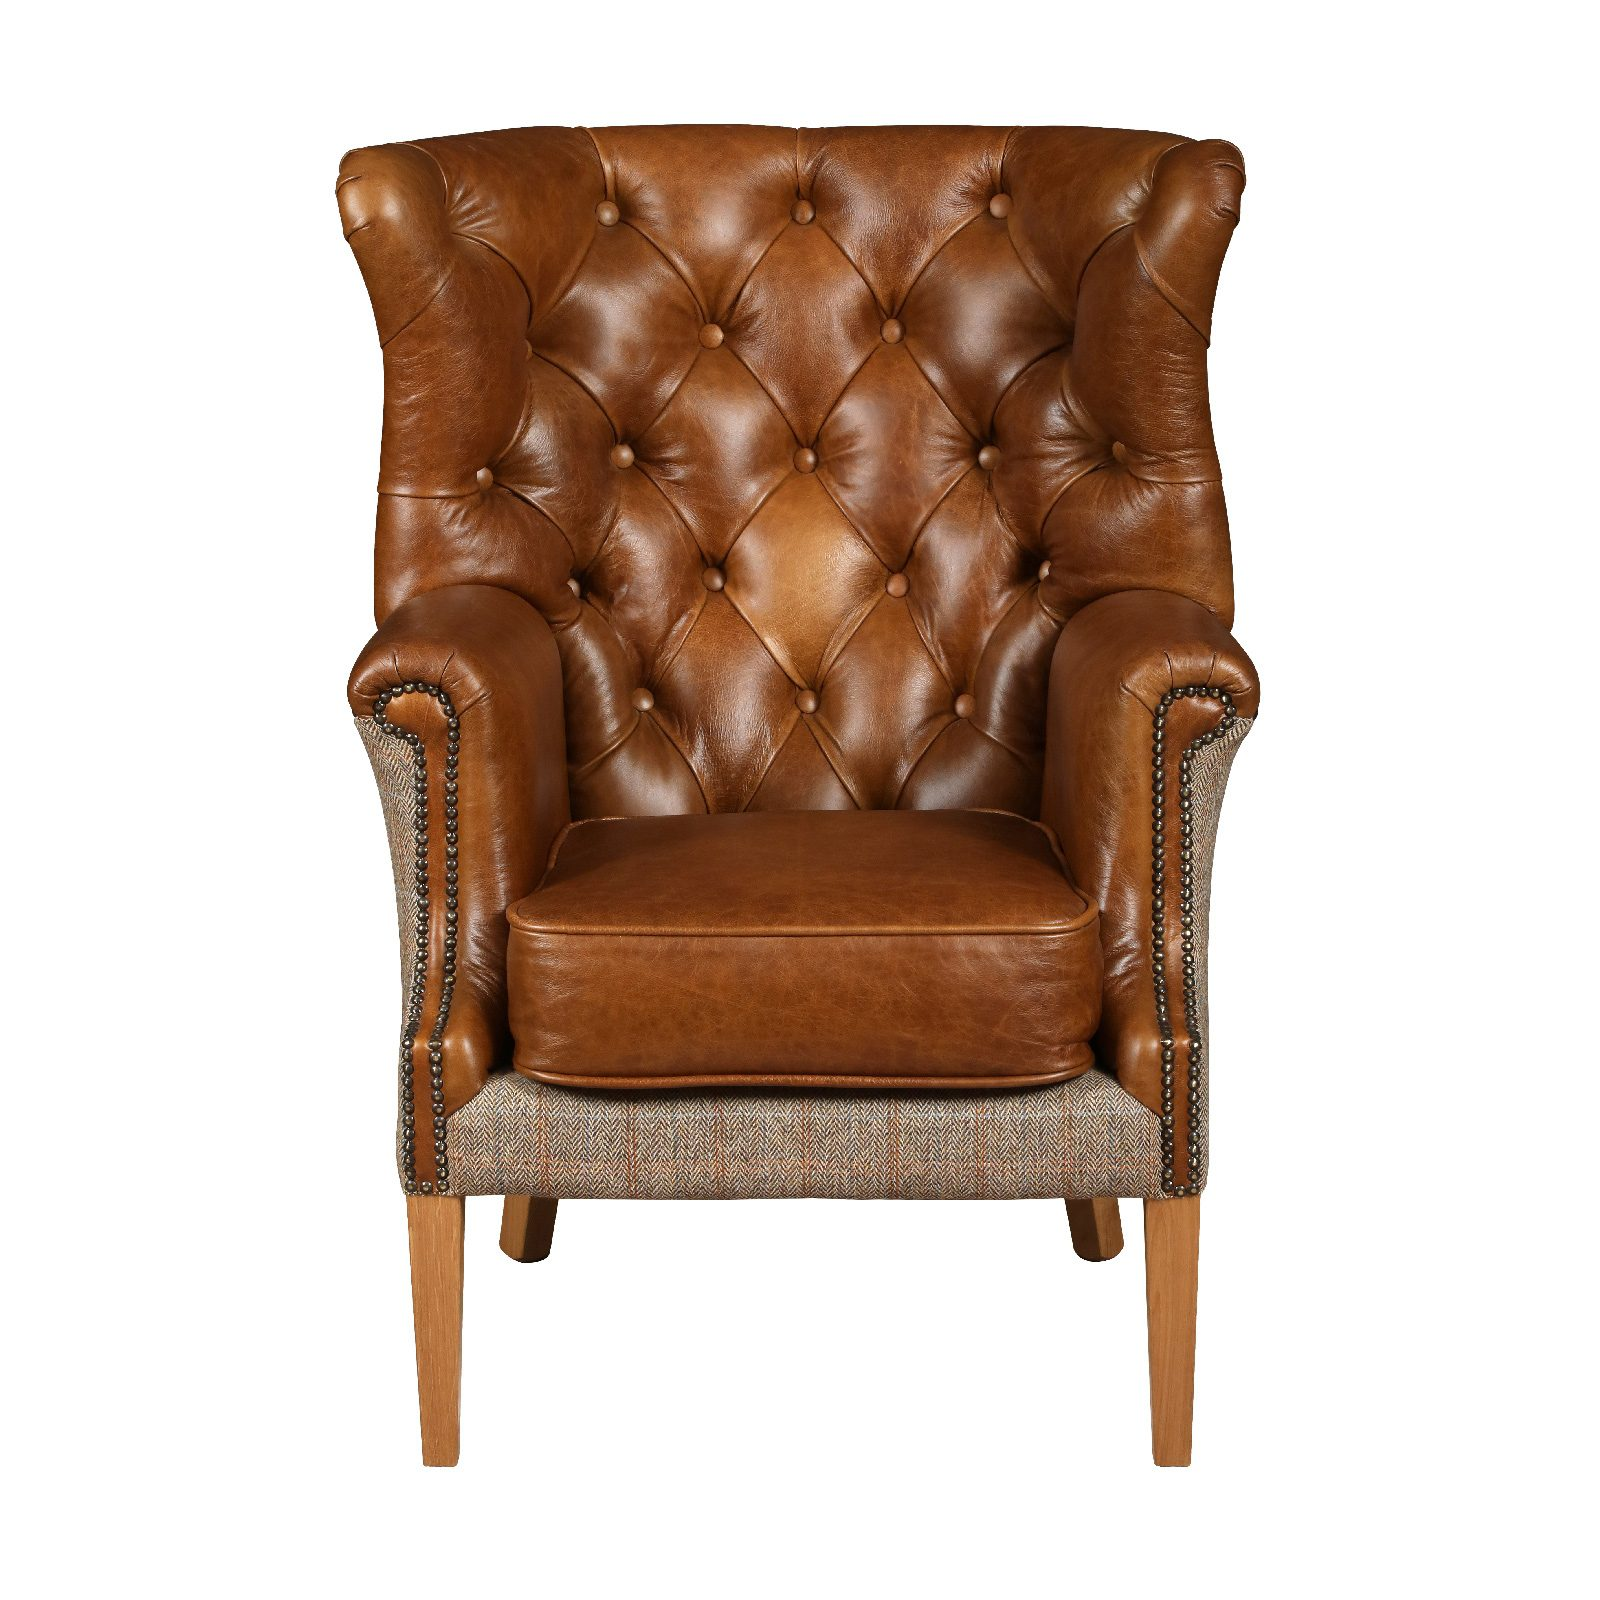 Winchester chair leather harris tweed V2